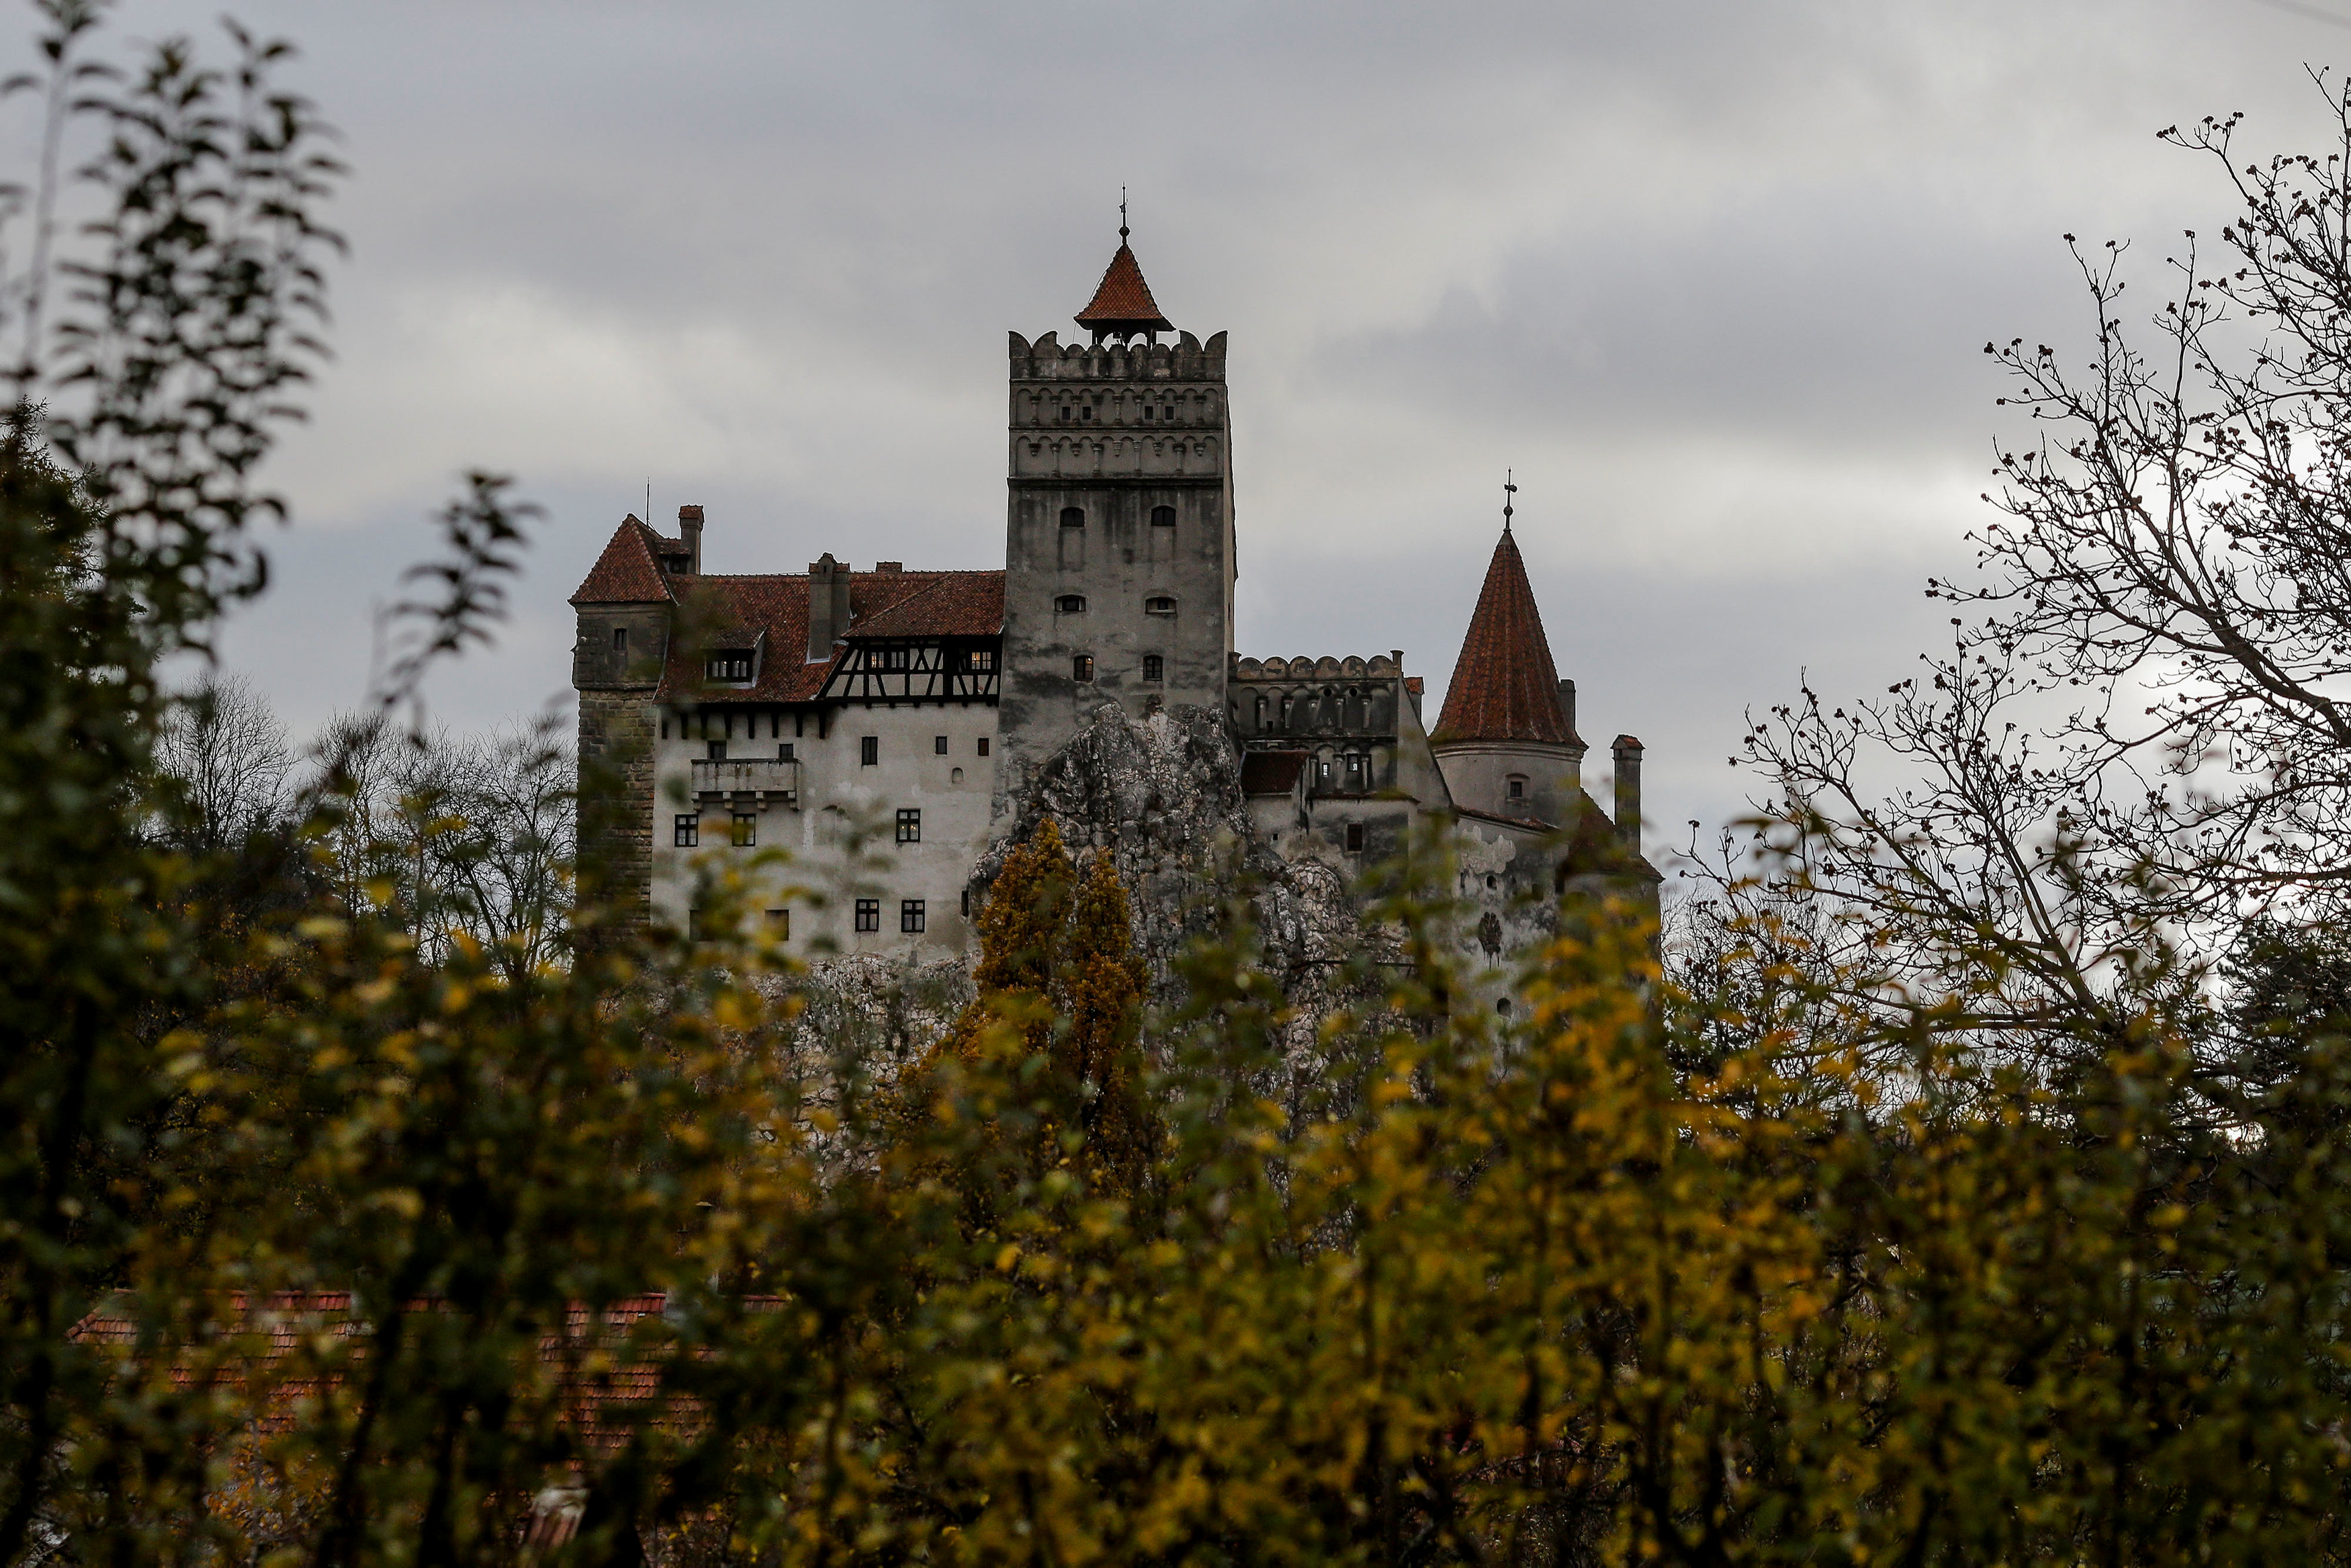 Dracula's castle welcomes guests with coffins and no silver